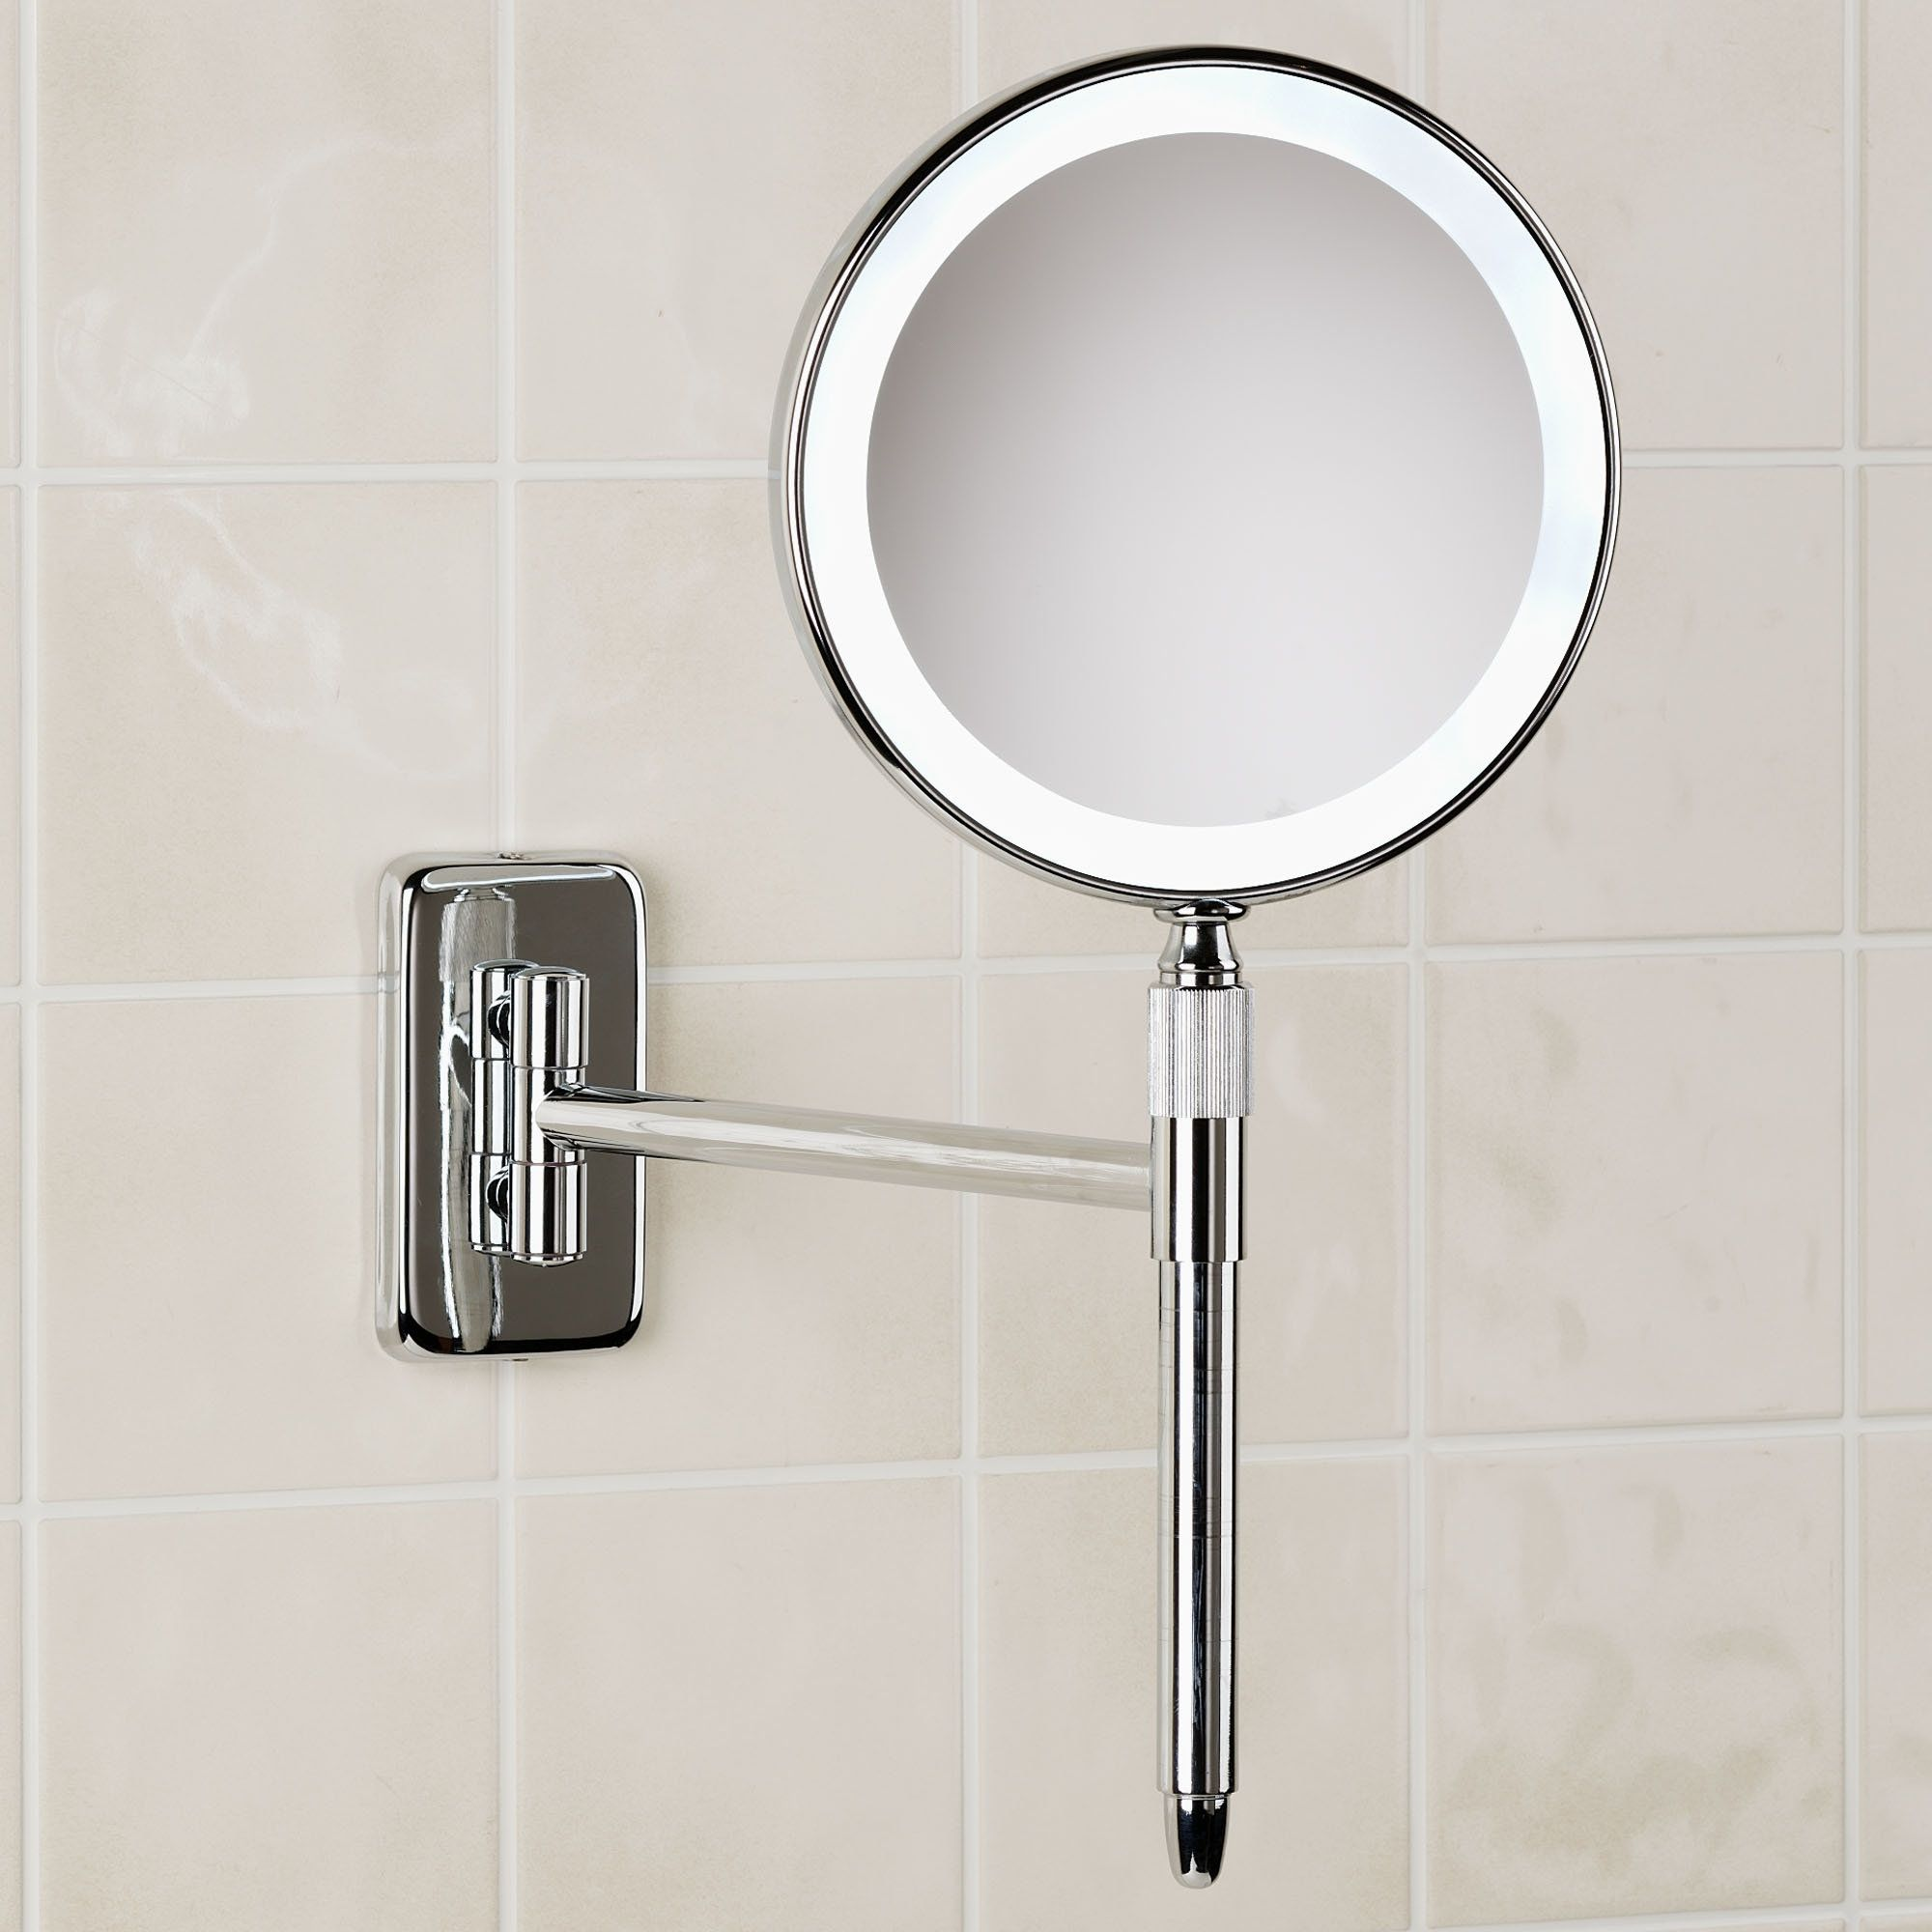 Wall Mounted Vanity Mirror Chrome | http://drrw.us | Pinterest ...